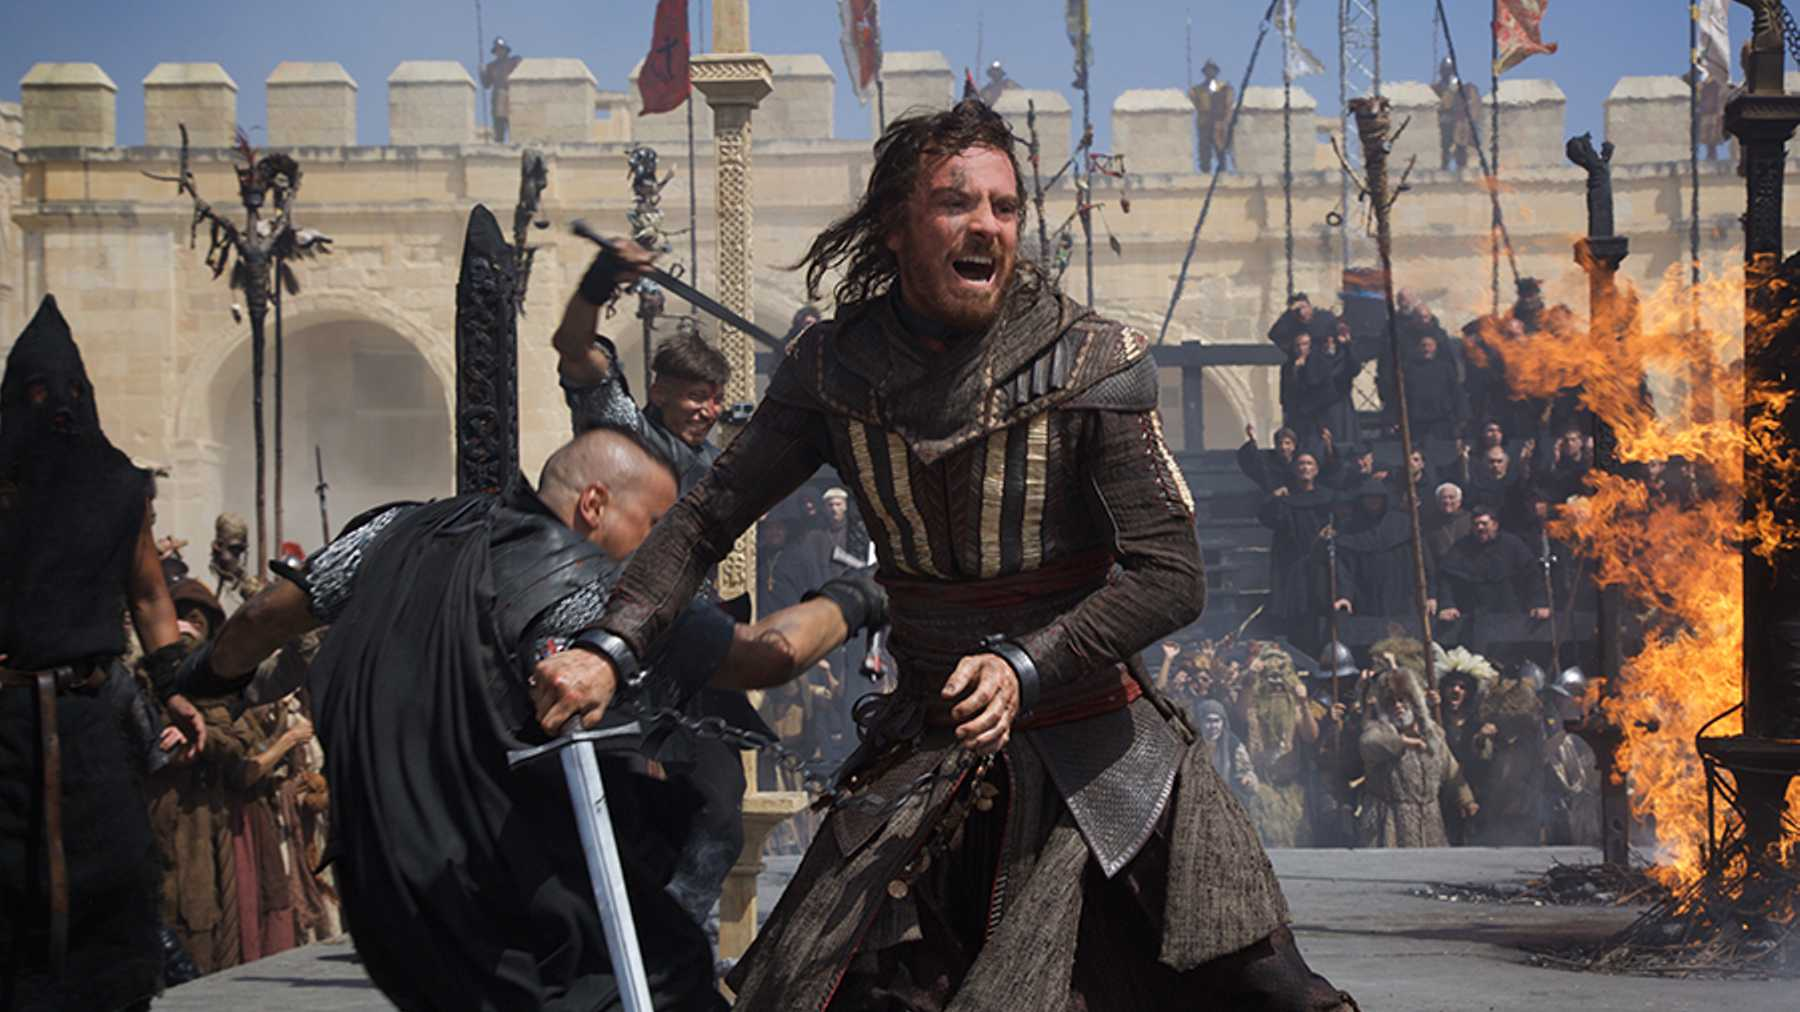 Exclusive: new look at Michael Fassbender in Assassin's